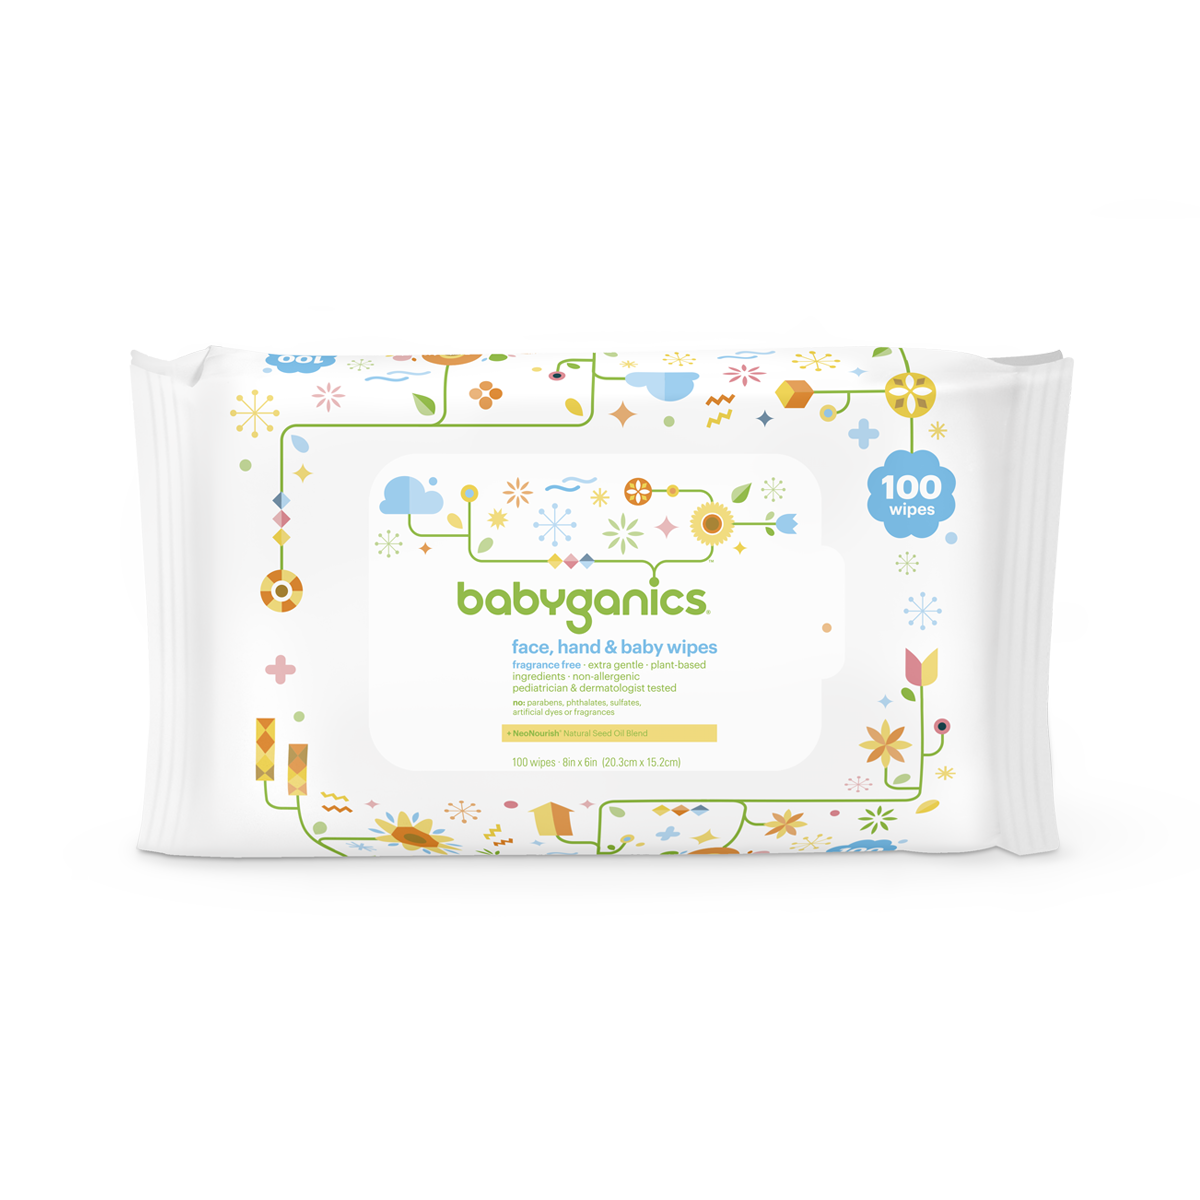 Babyganics Face, Hand & Baby Wipes, Unscented (100 count)